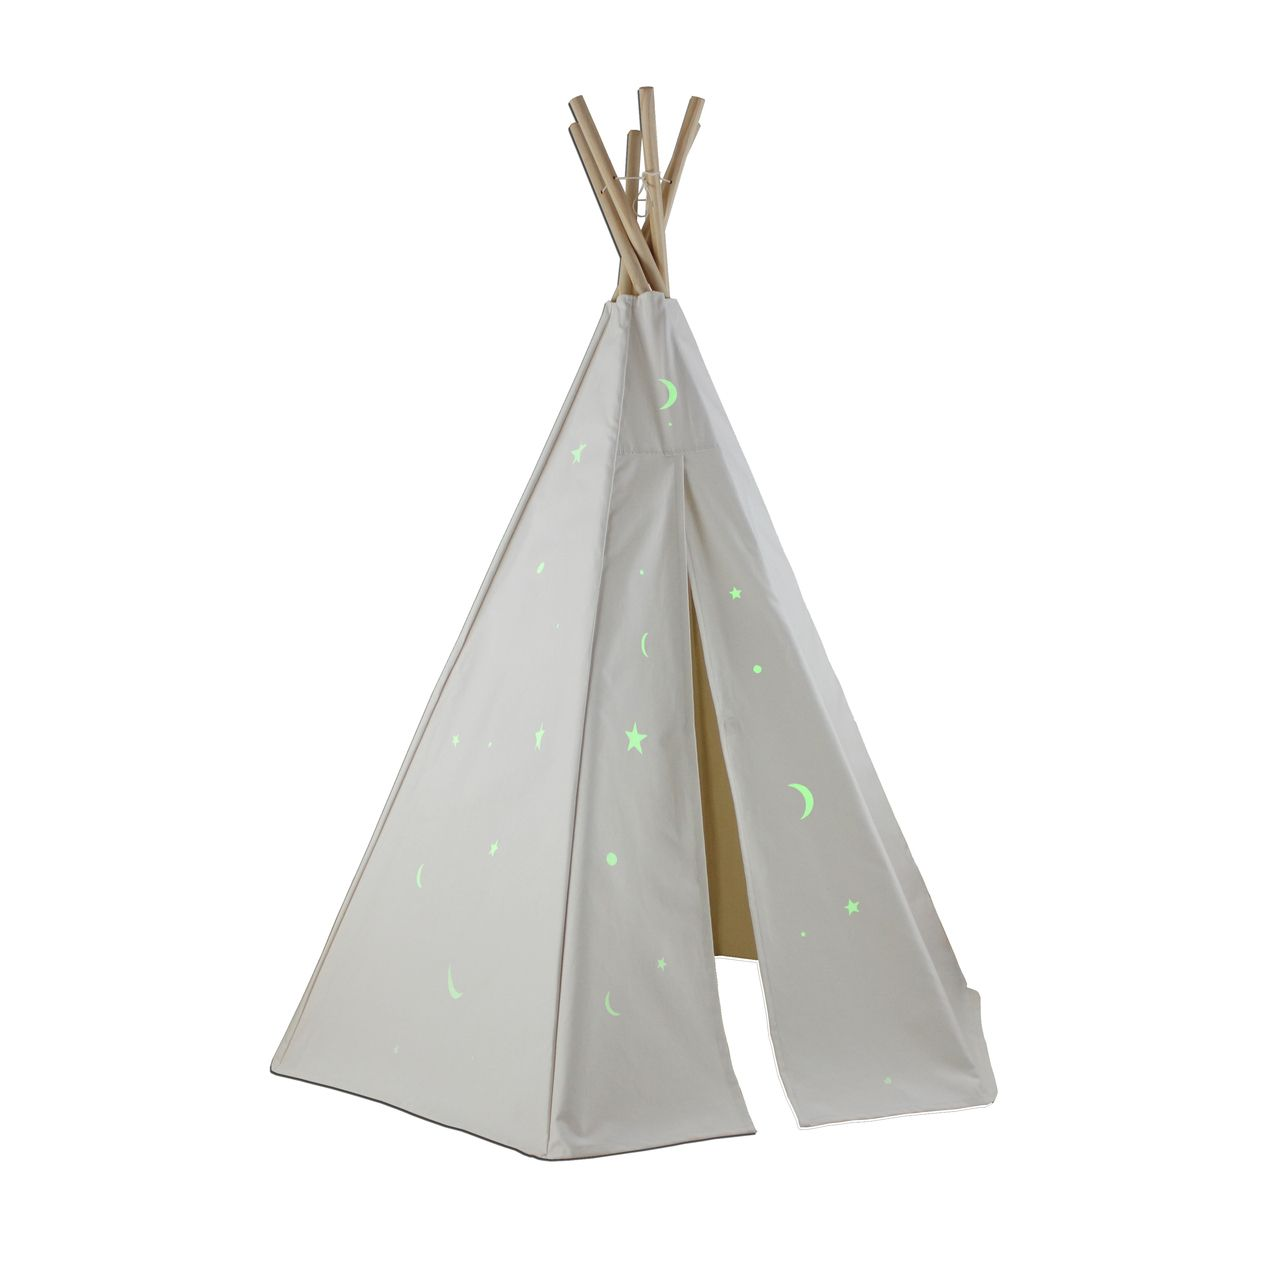 outlet store dc9a3 9dec1 Dexton 6ft Great Plains Teepee w/ Glow in the Dark Stars ...